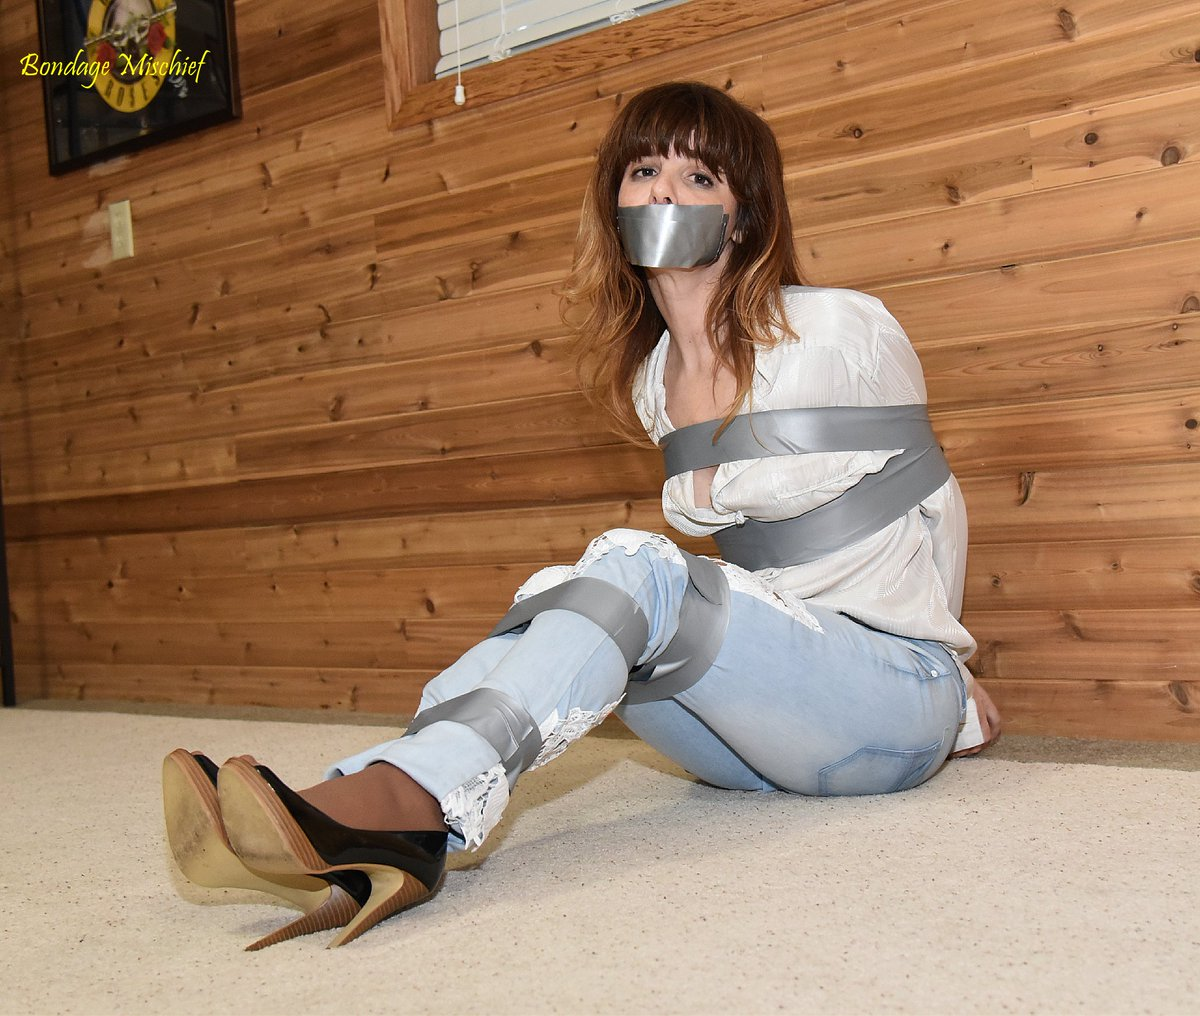 young-sex-bondage-duct-face-picture-taped-girls-knee-socks